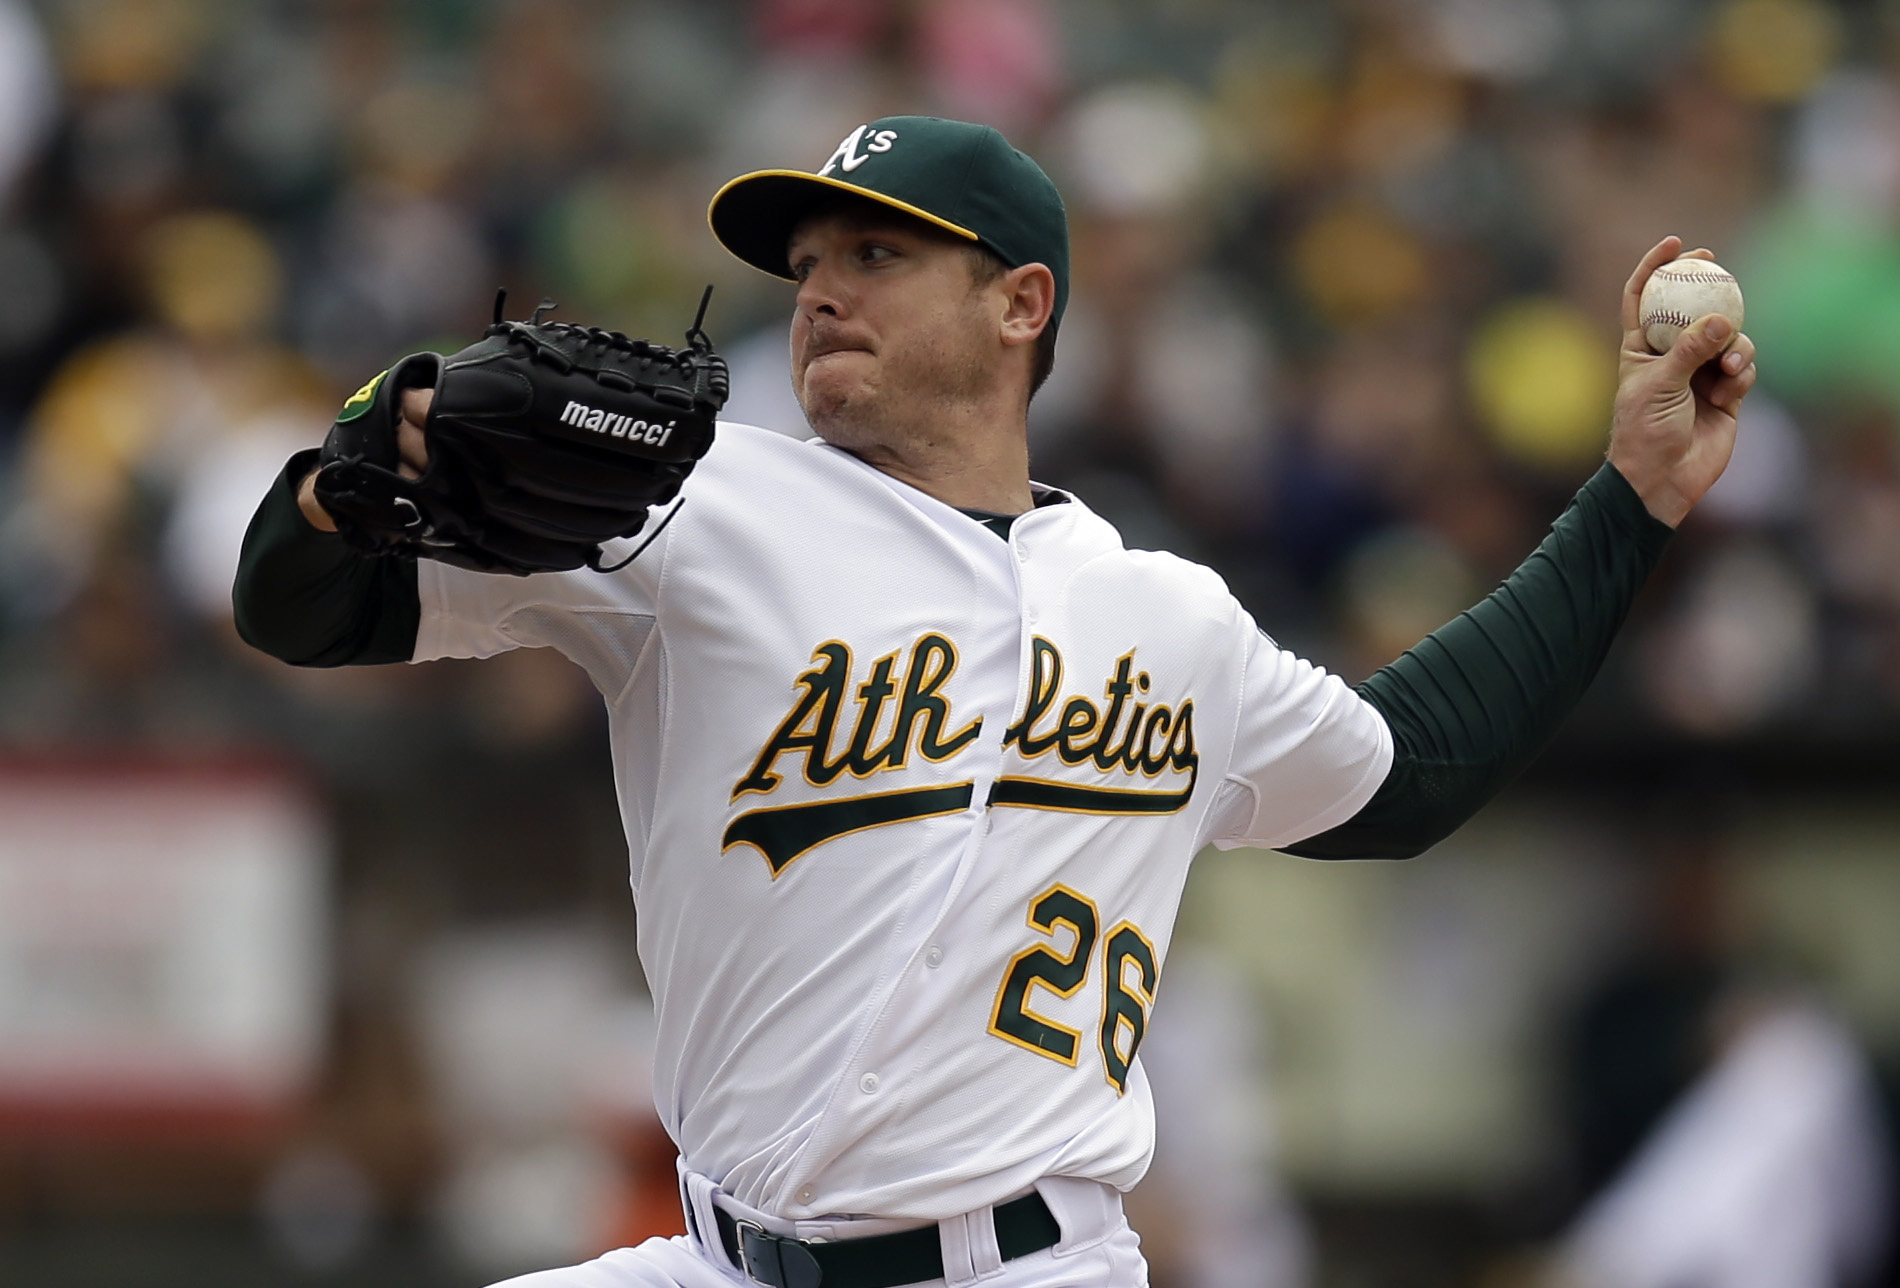 FILE - In this May 17, 2015, file photo, Oakland Athletics pitcher Scott Kazmir works against the Chicago White Sox in the first inning of a baseball game, in Oakland, Calif. The Athletics have begun their expected changes leading up to the trade deadline